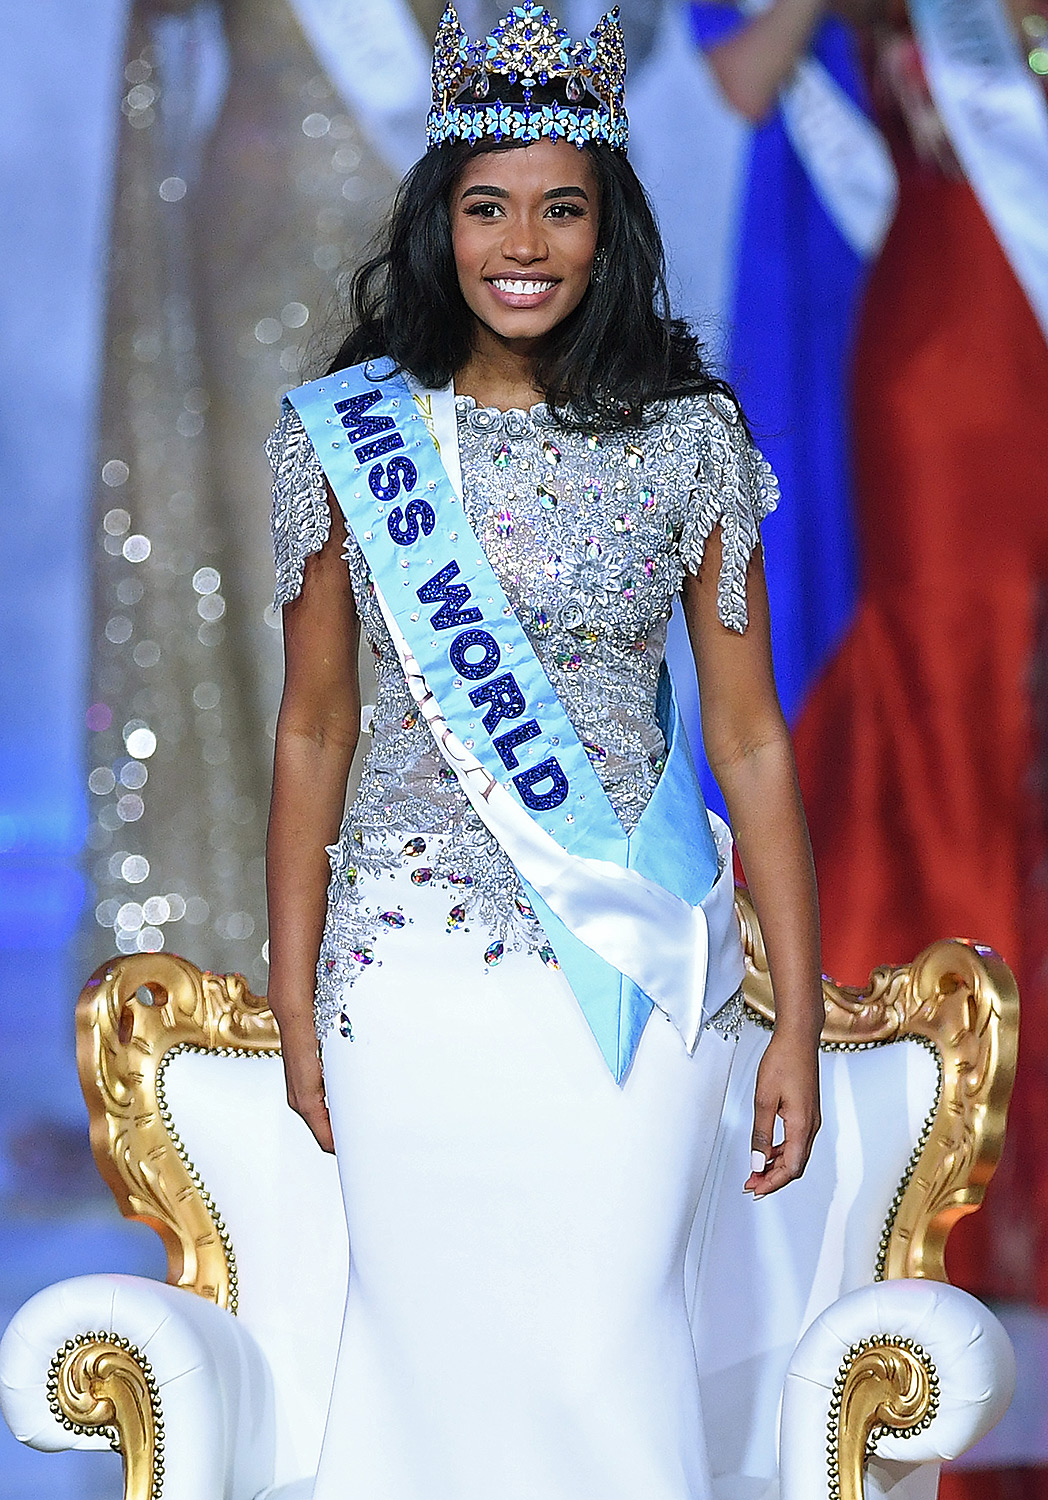 Newly crowned Miss World 2019 Miss Jamaica Toni-Ann Singh